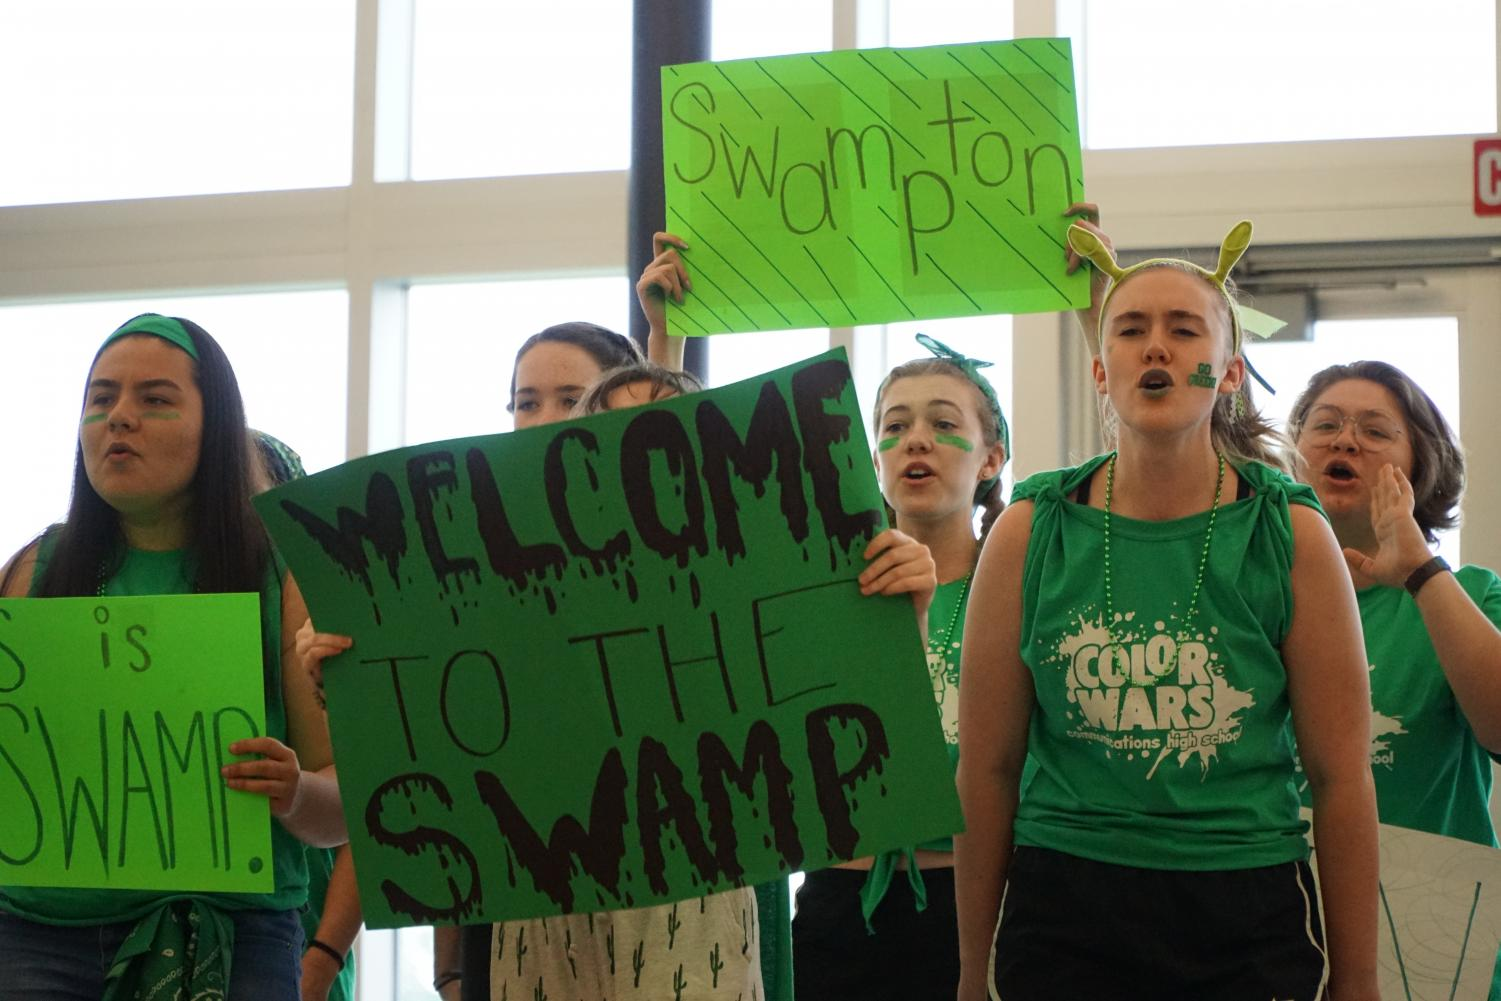 Sophomores+and+juniors+from+the+Green+Team+chant+with+signs.+The+Green+Team%2C+also+called+The+Swamp%2C+placed+third+in+team+chants.